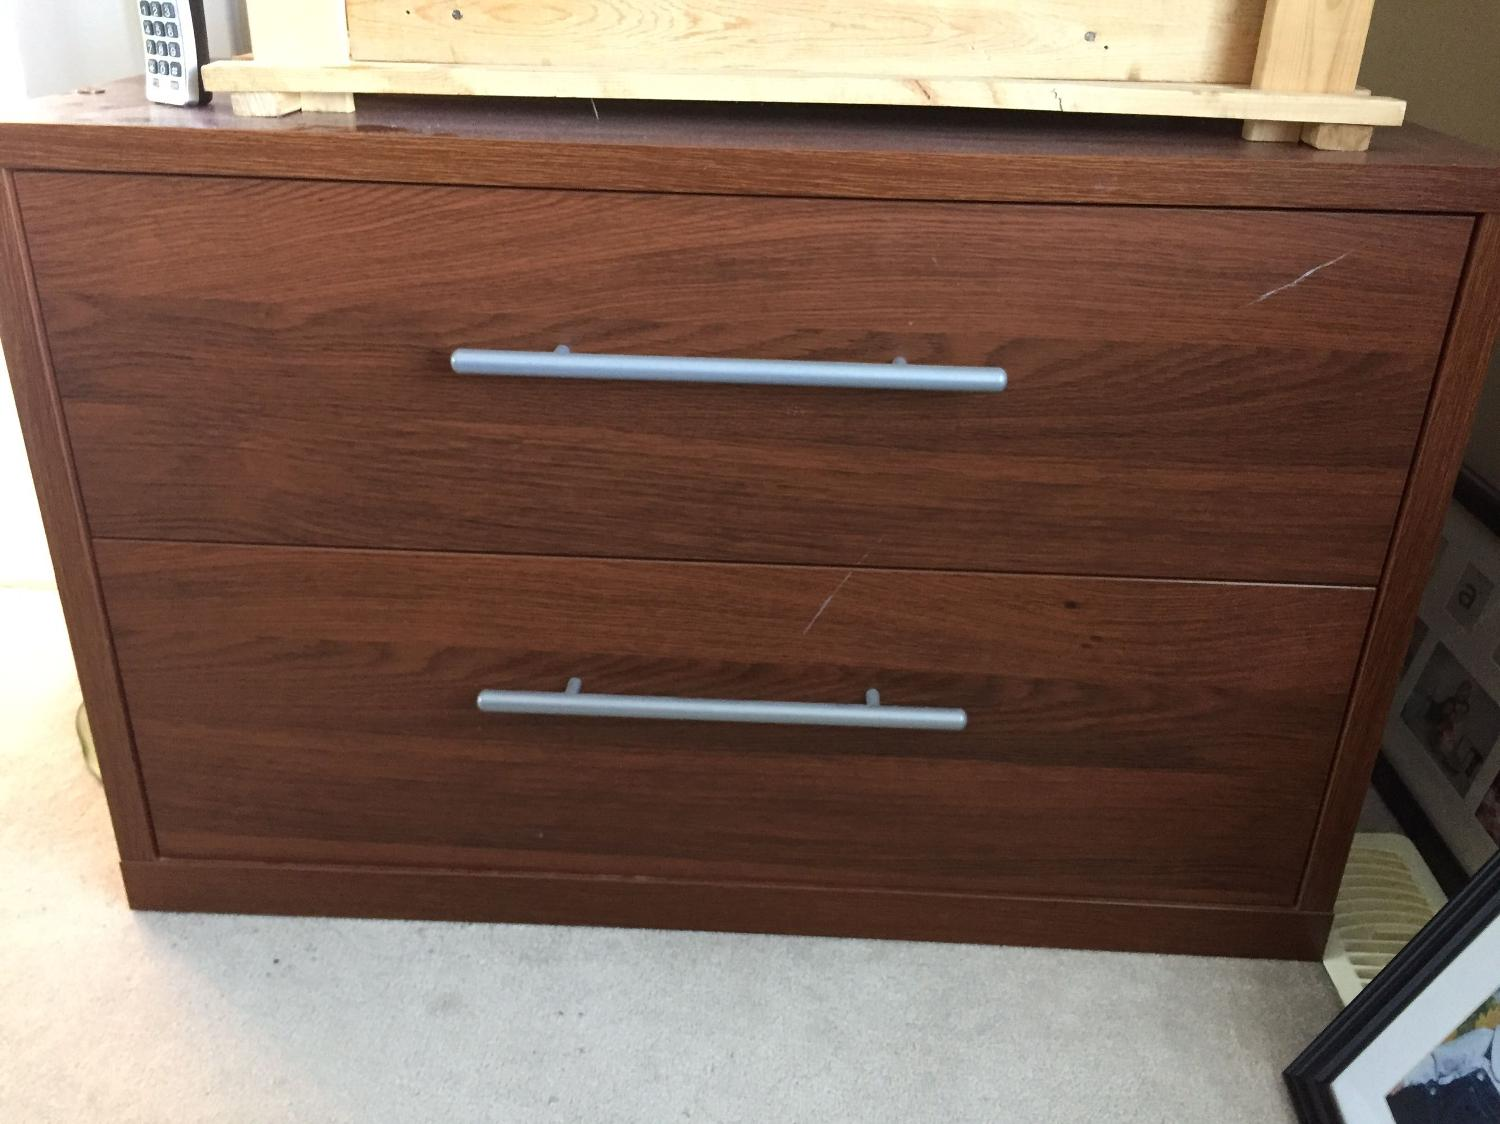 Find More 2 Drawer Dresser For Sale At Up To 90 Off Richmond BC